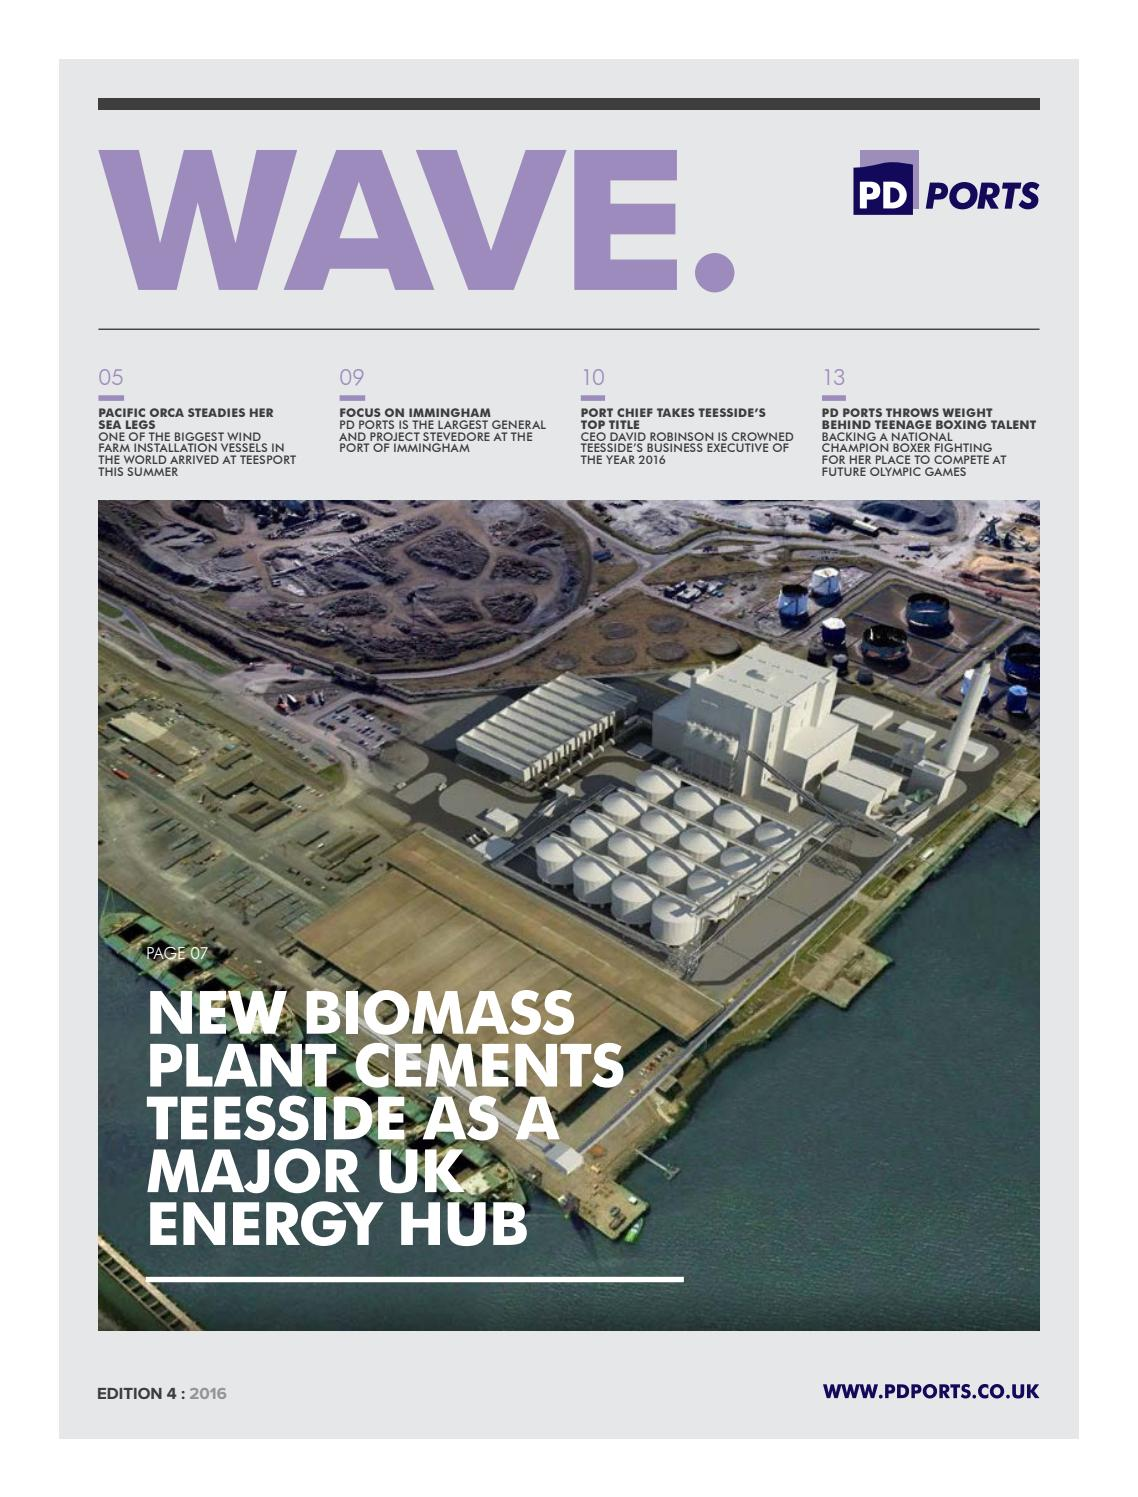 Wave Edition 4 2016 - PD Ports